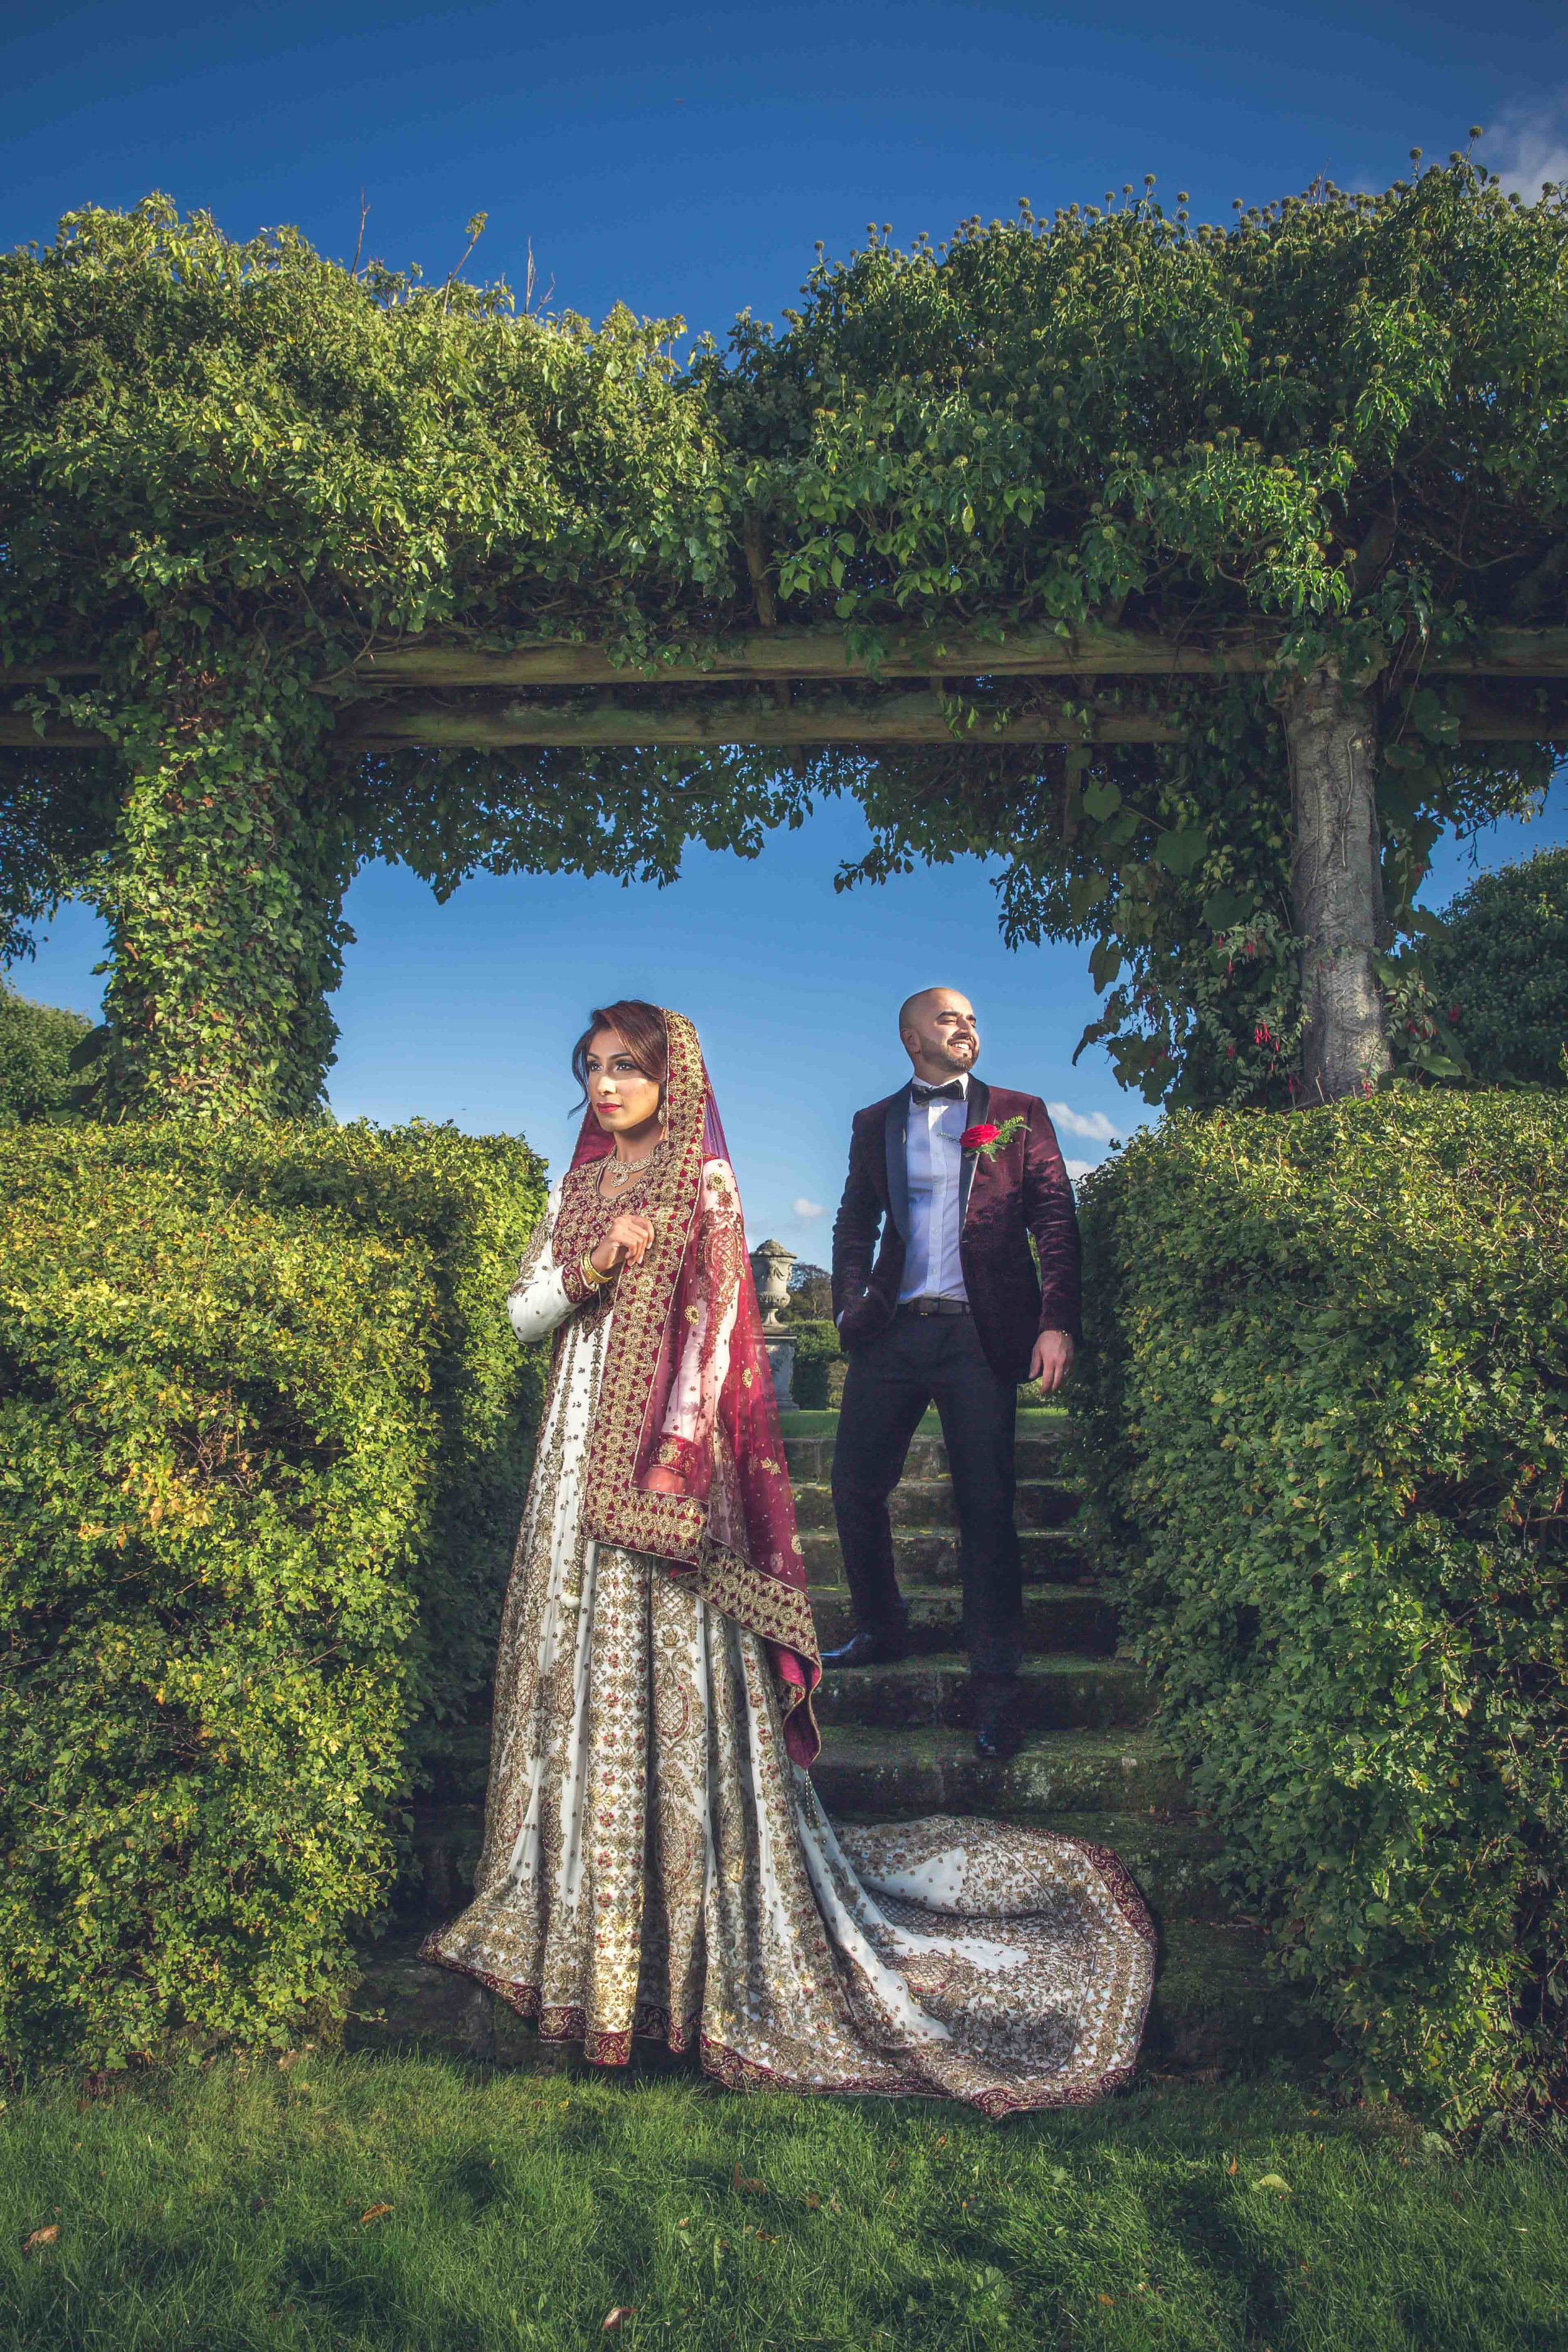 Asian Wedding Photographer Opu Sultan Photography Lyme Park Scotland Edinburgh Glasgow London Manchester Liverpool Birmingham Wedding Photos prewed shoot Azman & Saira Blog-90.jpg